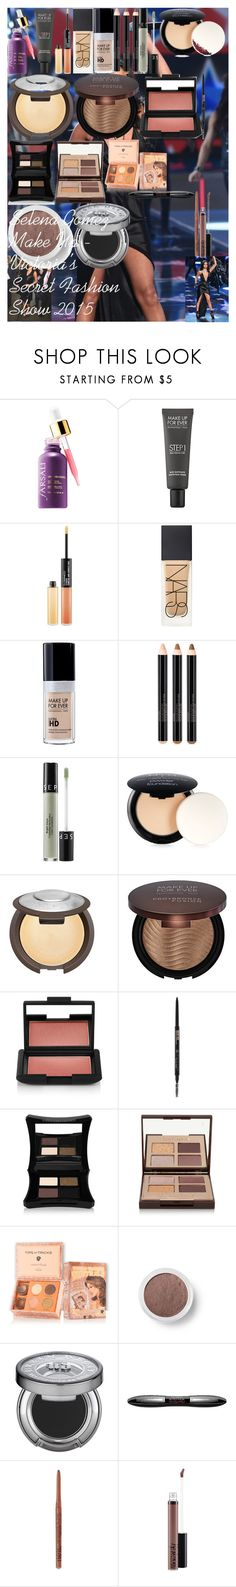 Selena Gomez Make Up - Victoria's Secret Fashion Show 2015 by oroartye-1 on Polyvore featuring beauty, Charlotte Tilbury, NARS Cosmetics, Smashbox, MAKE UP FOR EVER, Illamasqua, MAC Cosmetics, Anastasia Beverly Hills, Urban Decay and Bare Escentuals